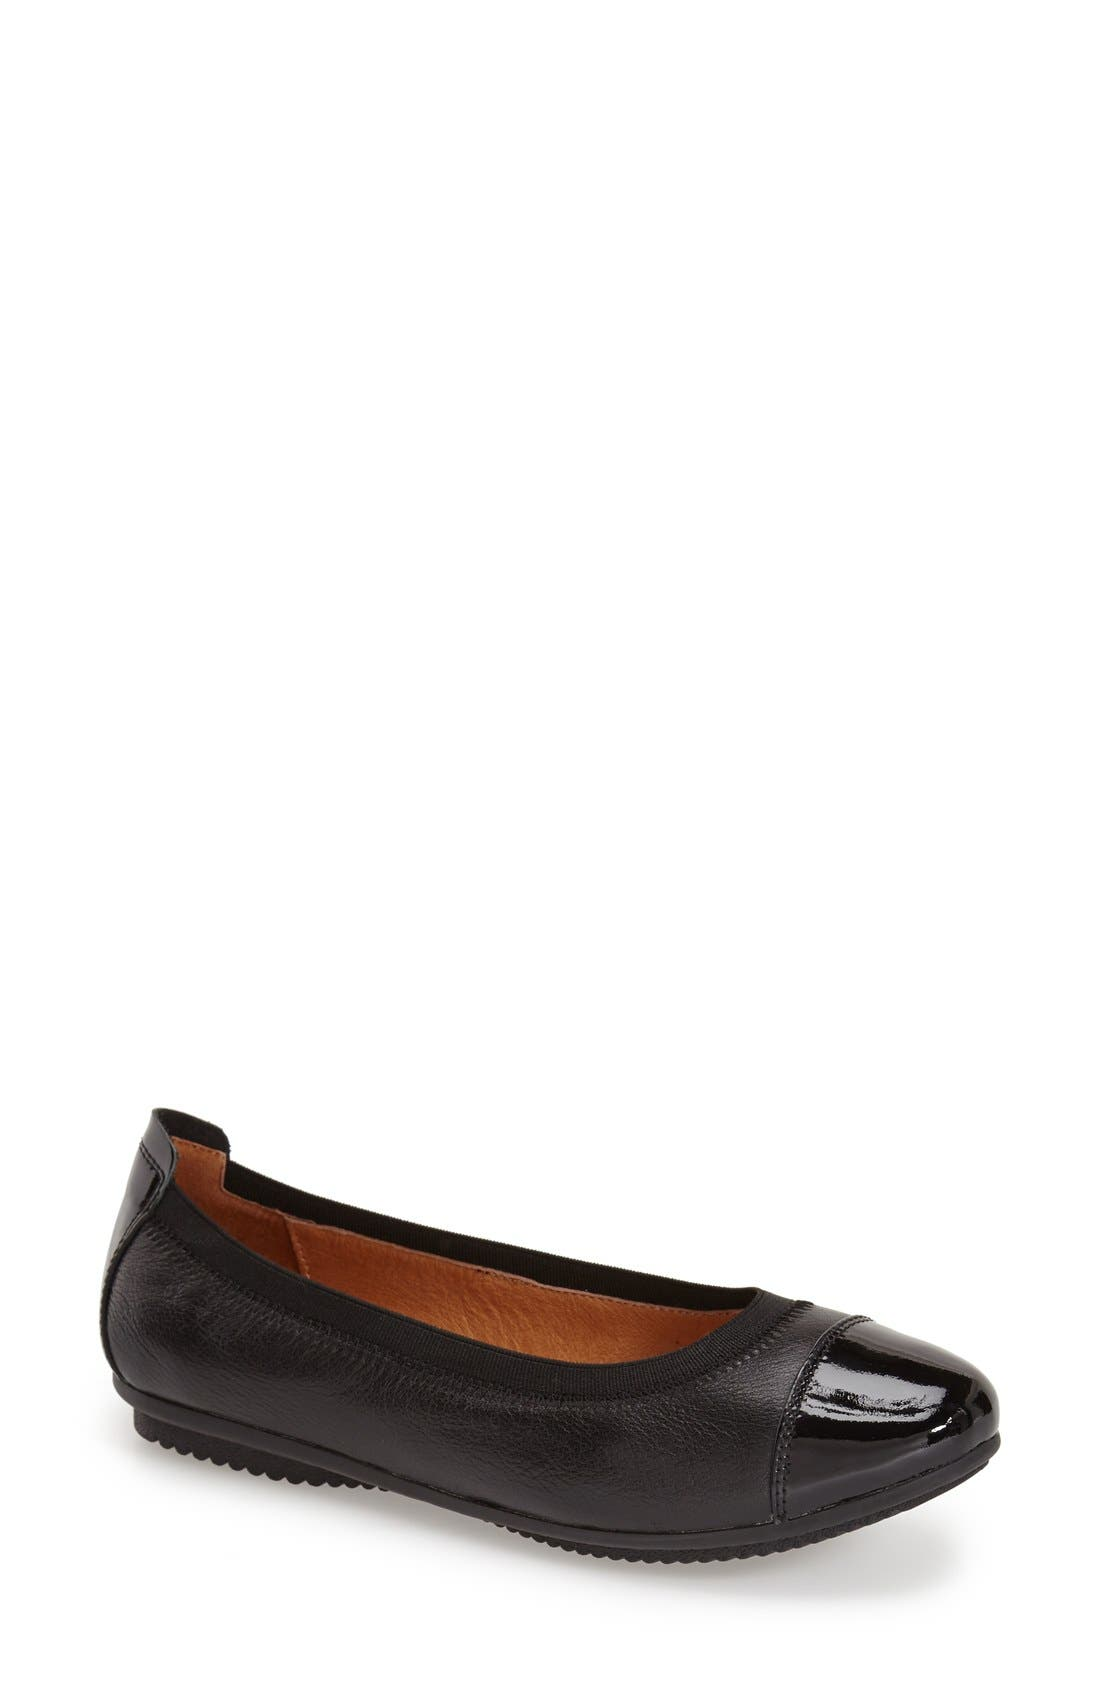 Pippa 07 Flat,                             Main thumbnail 1, color,                             BLACK PATENT